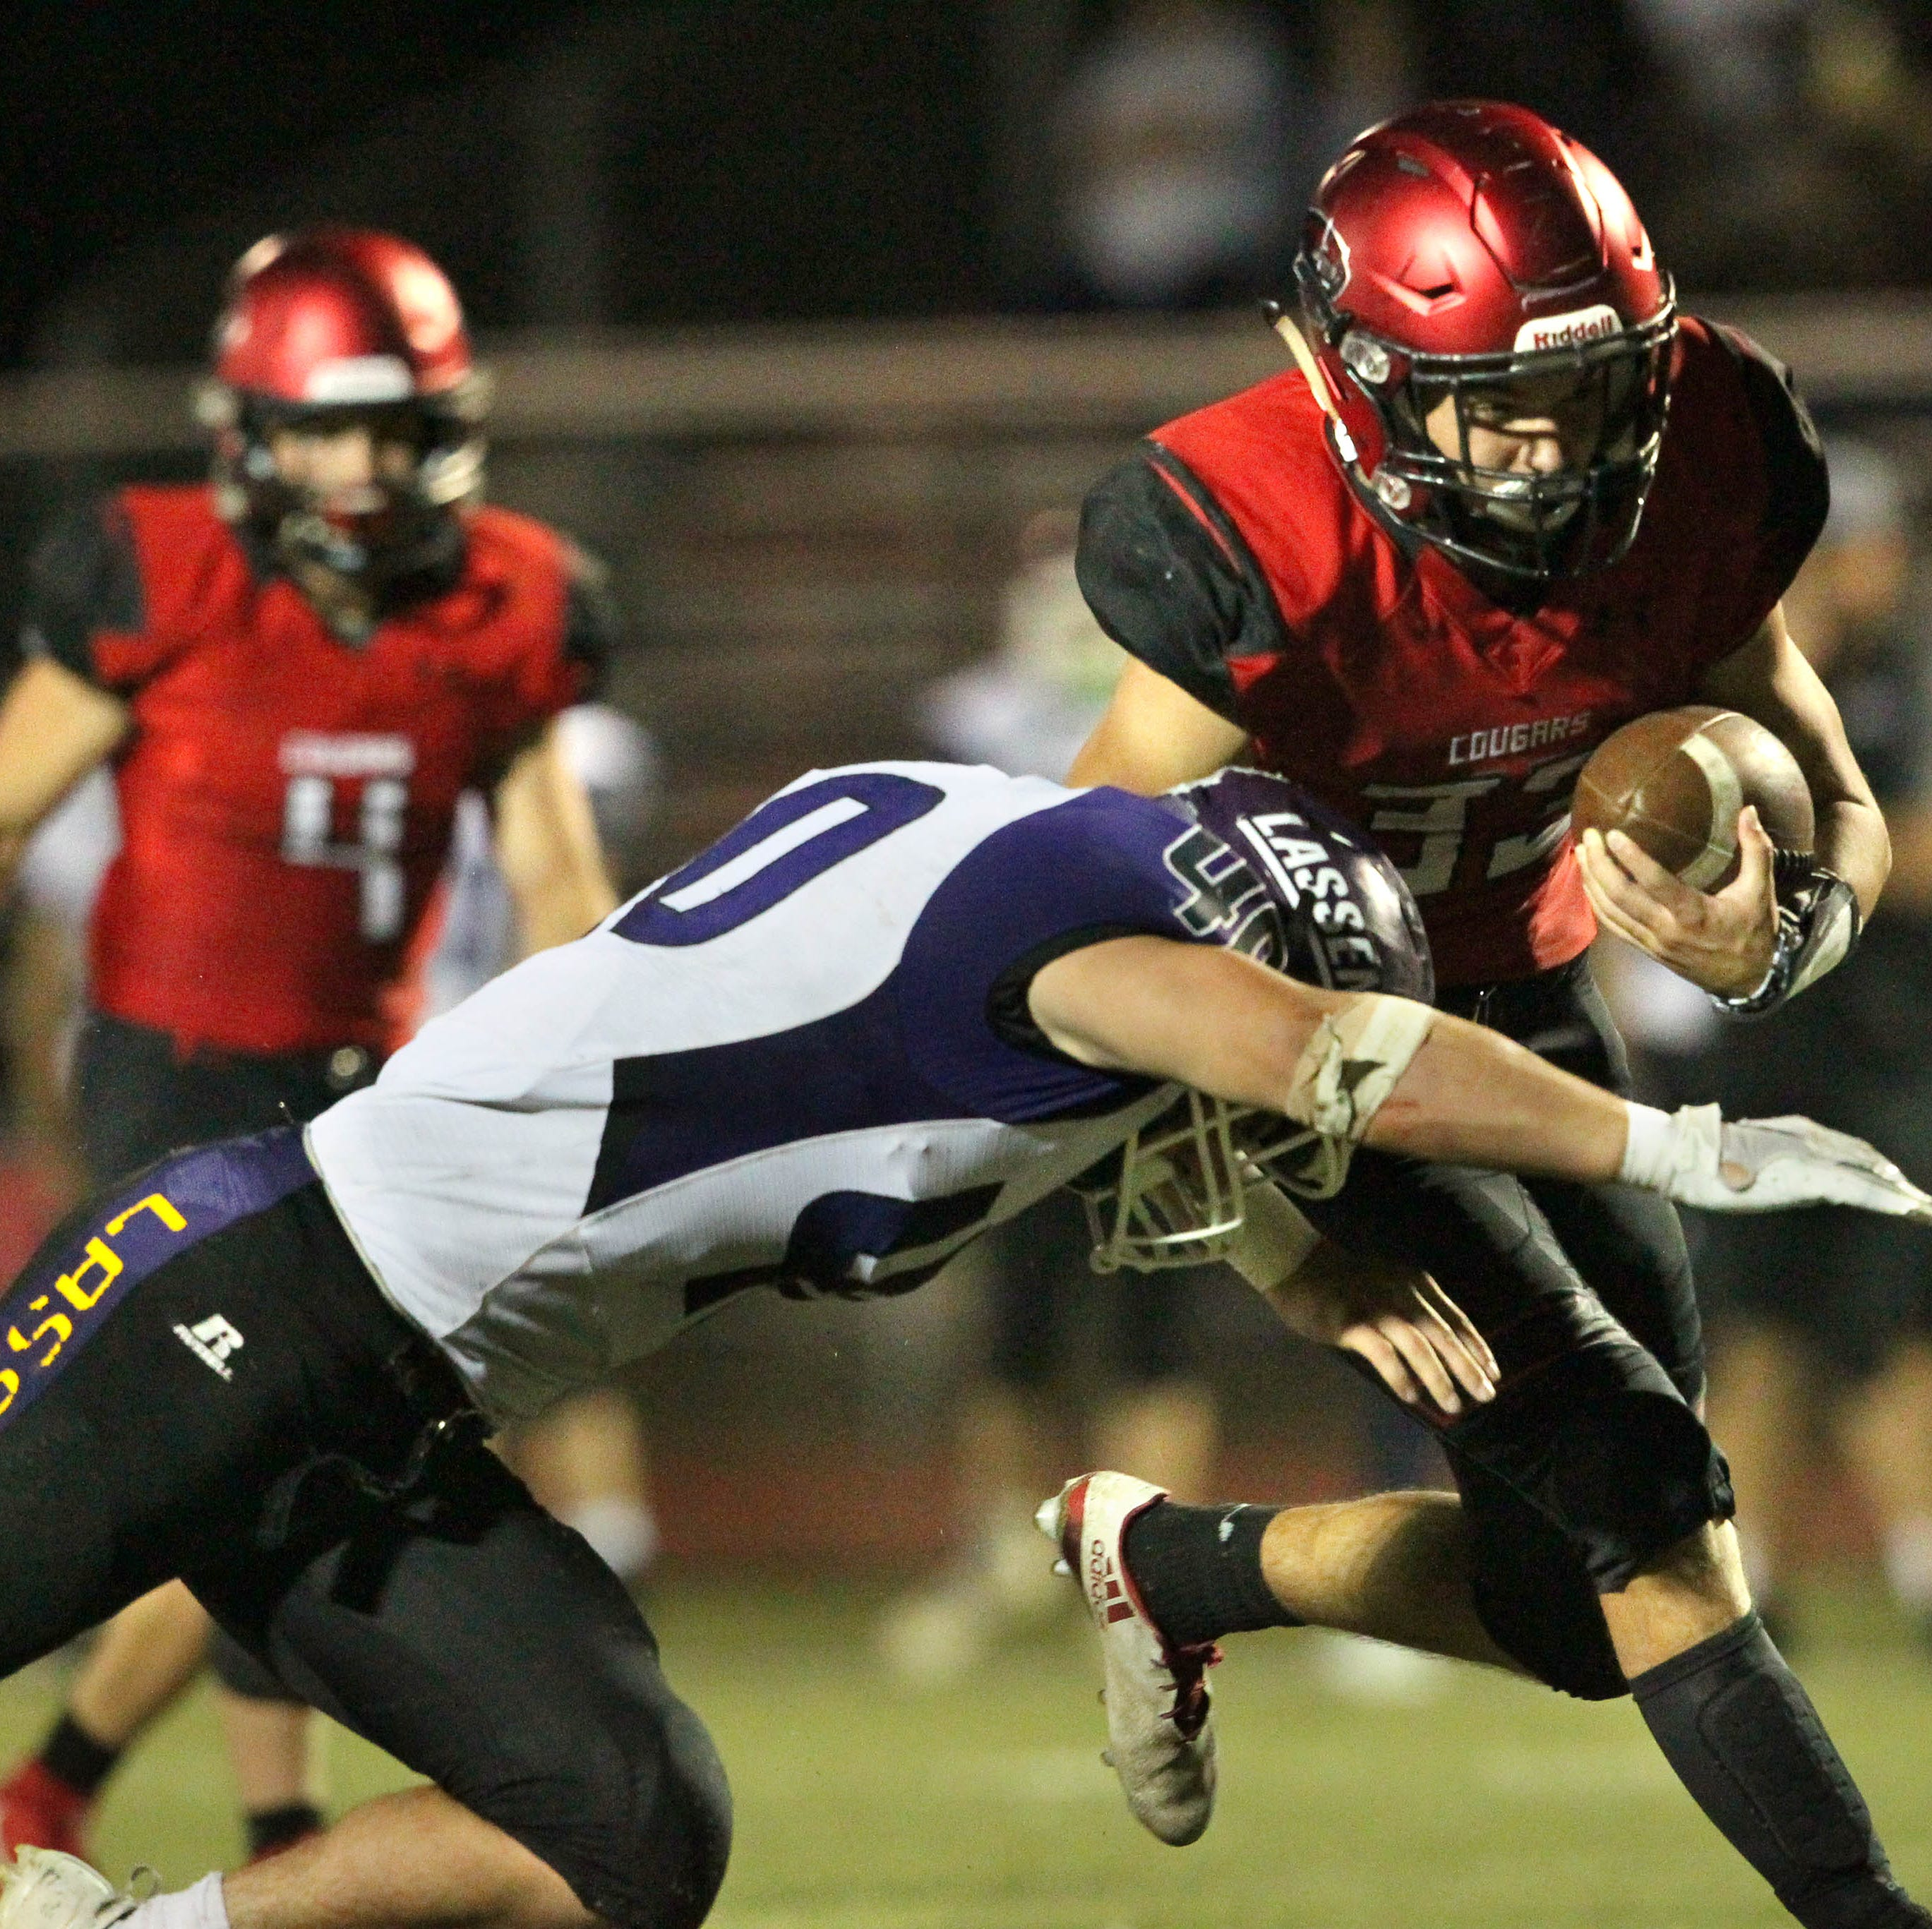 Photos: Foothill Cougars come from behind to beat Lassen, 31-28